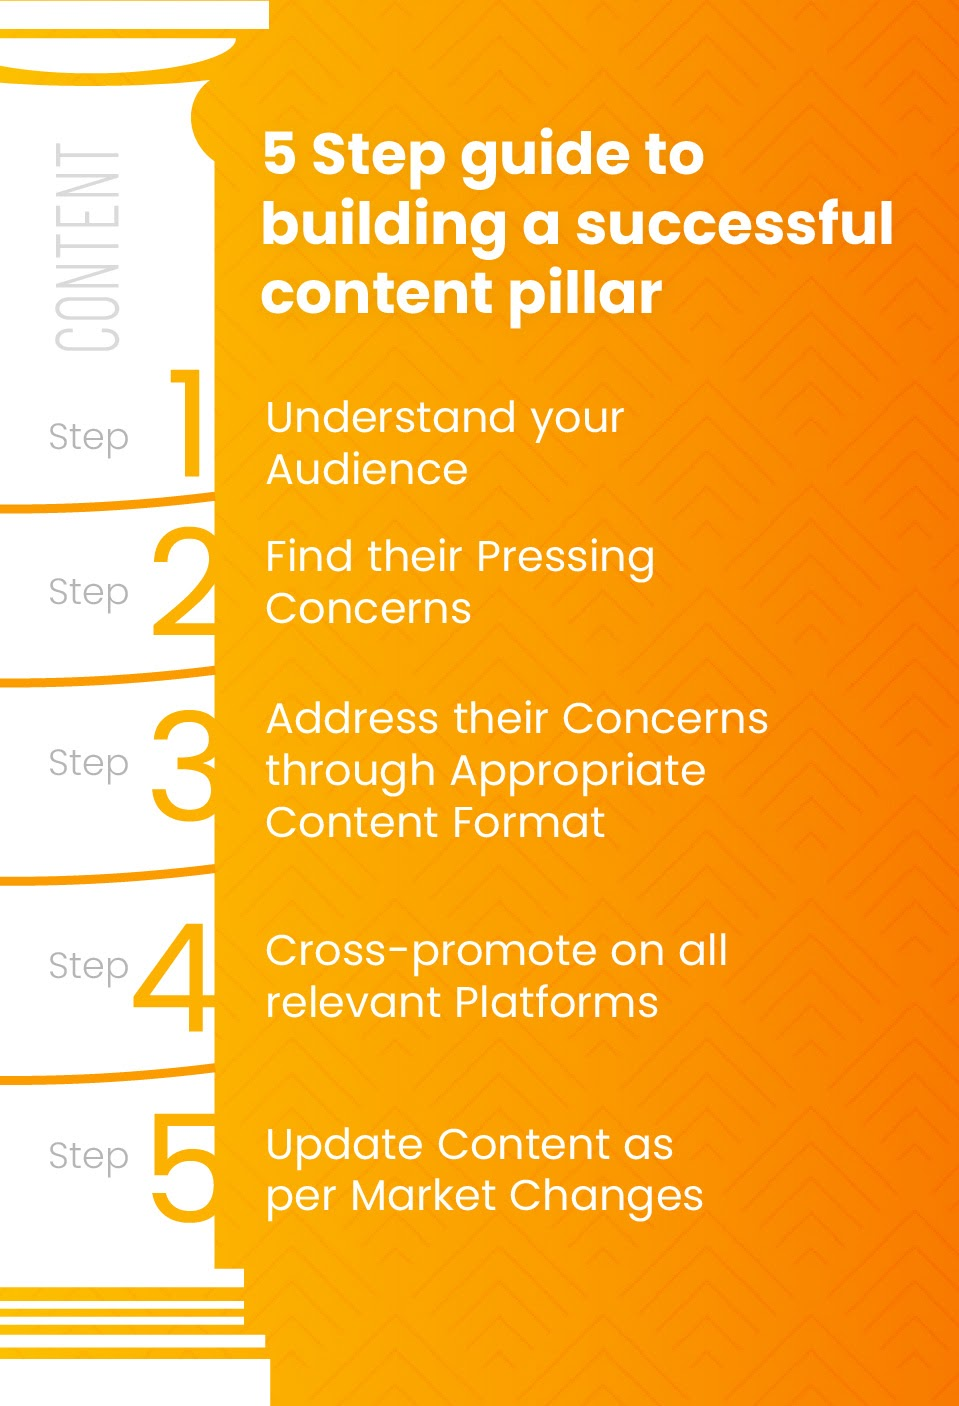 5 Step guide to building a successful content pillar